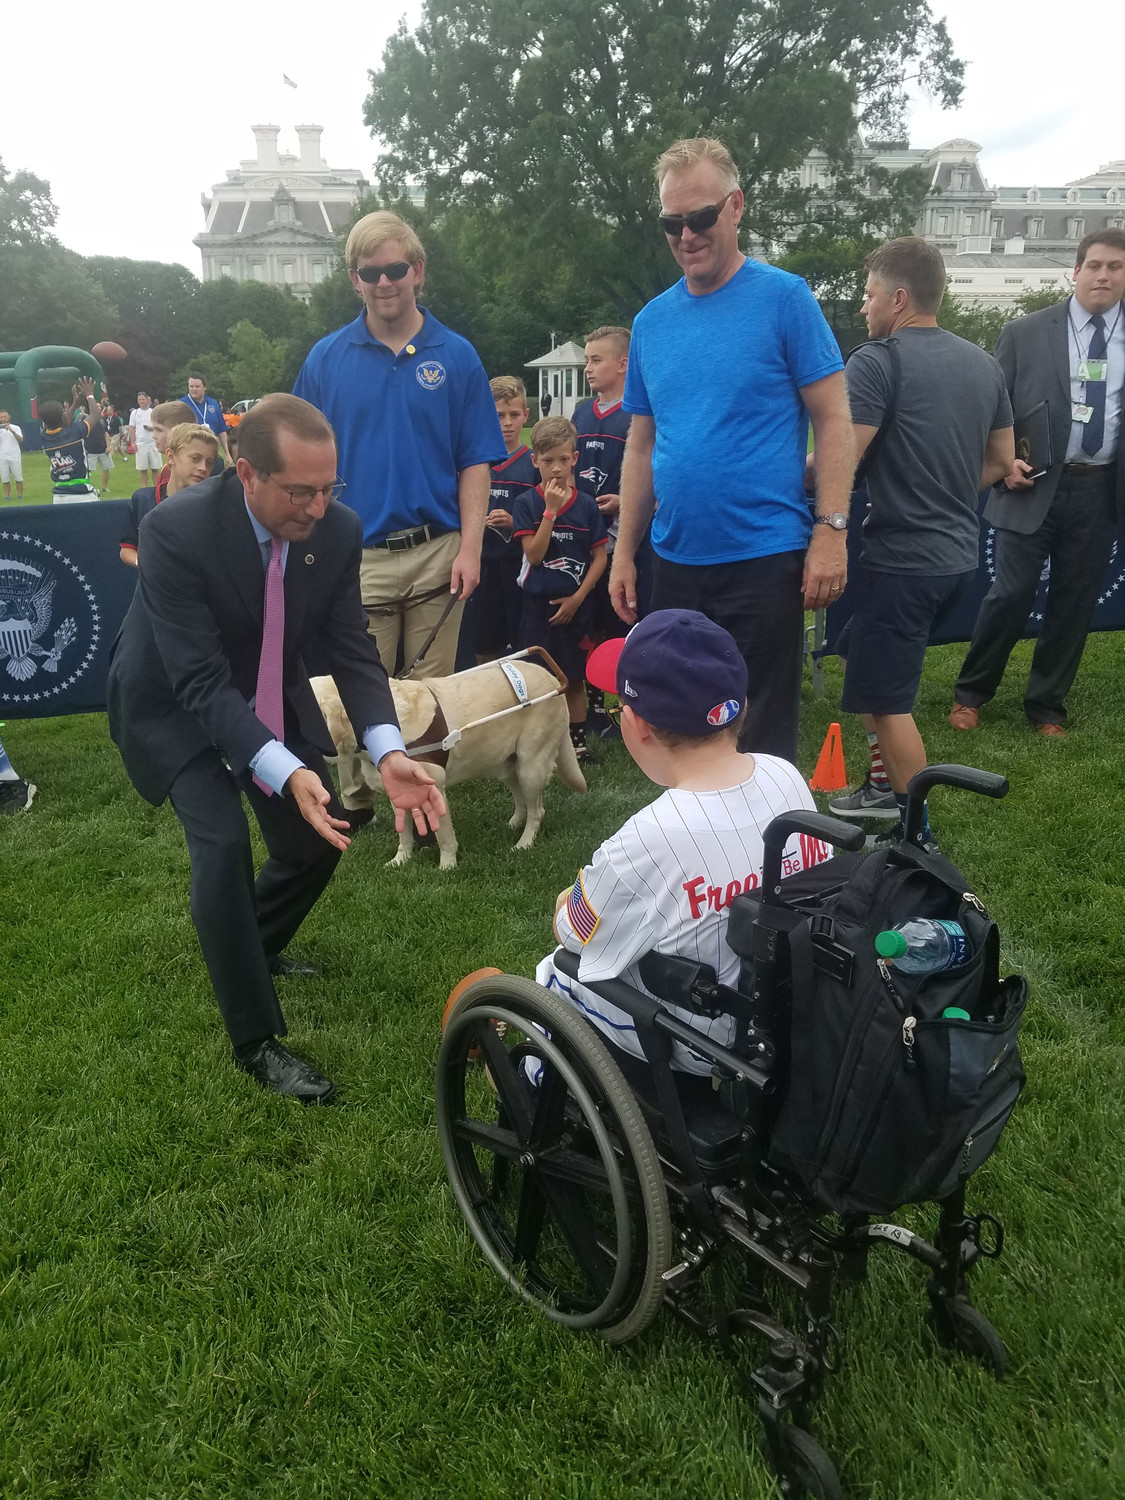 Ethan Whitaker met Secretary of Health and Human Services Alex Azar during a field day on May 30.